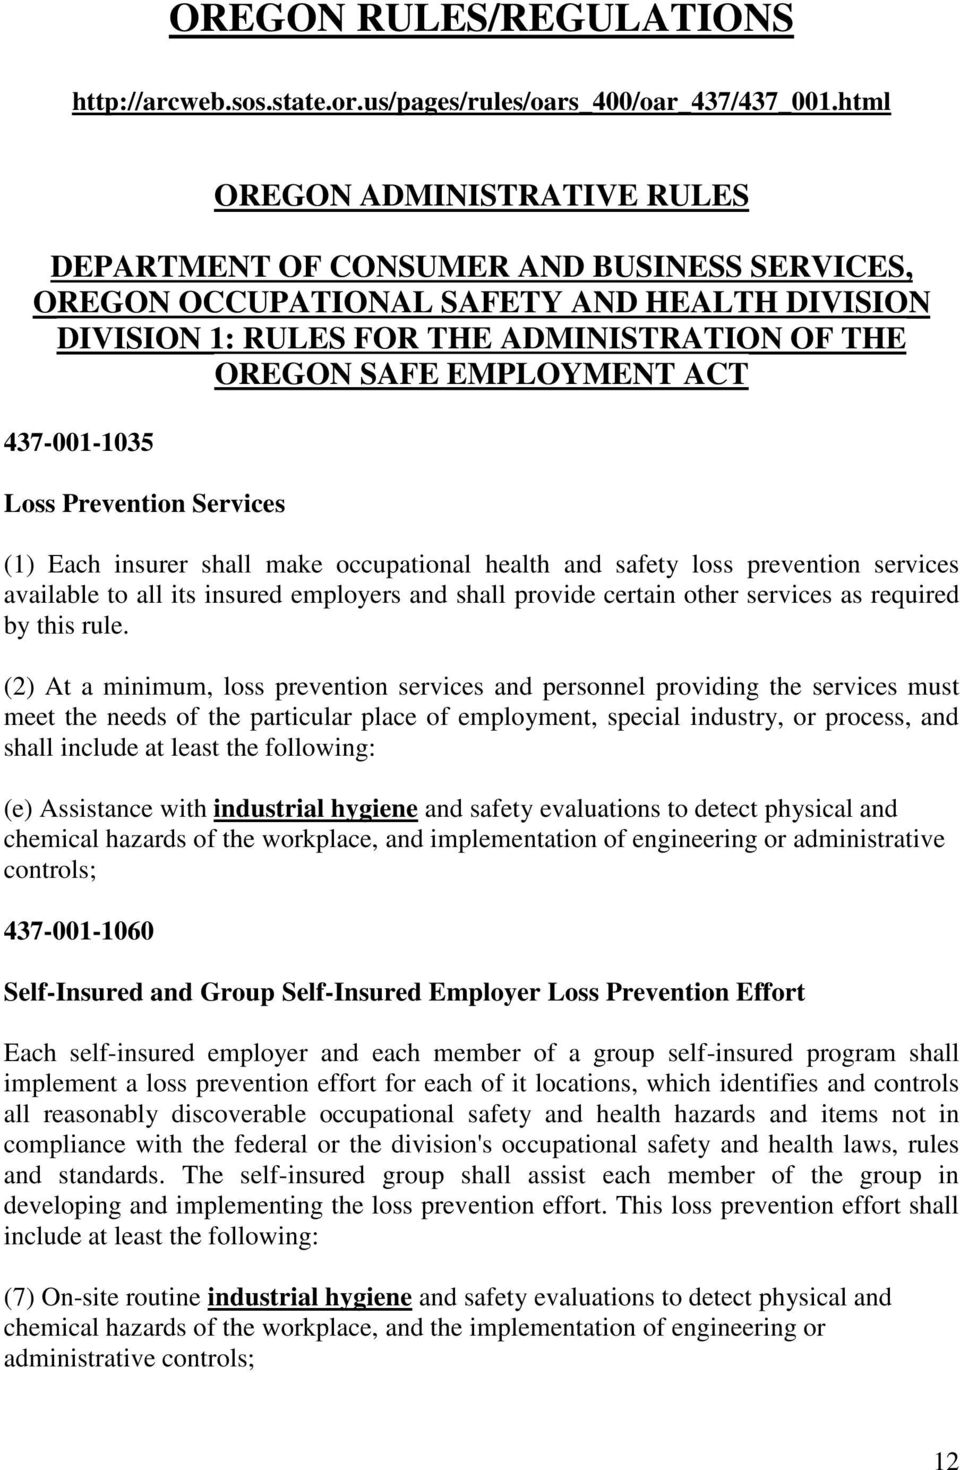 ACT 437-001-1035 Loss Prevention Services (1) Each insurer shall make occupational health and safety loss prevention services available to all its insured employers and shall provide certain other